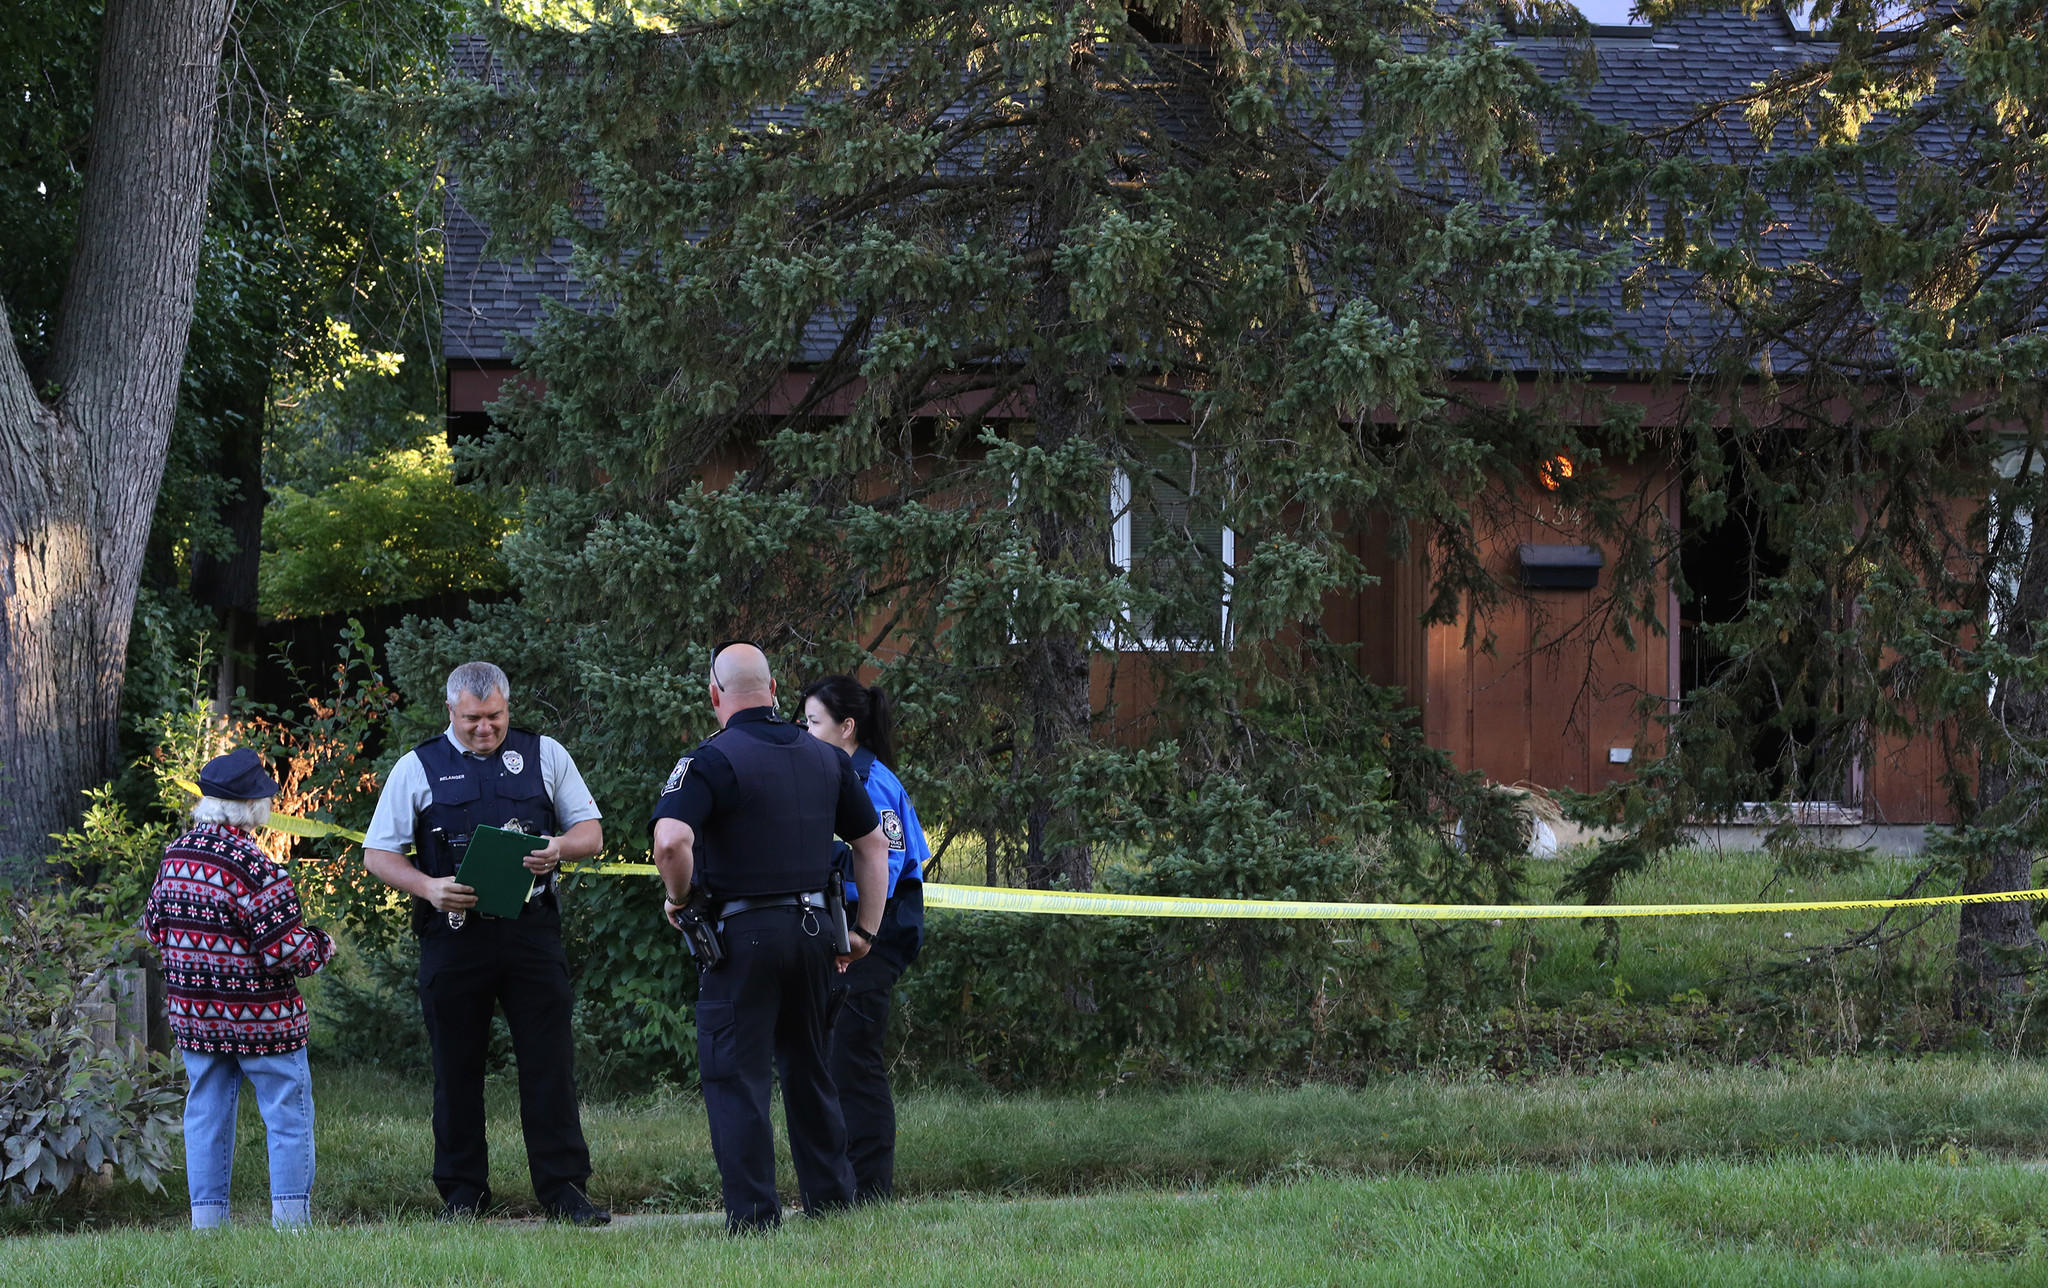 Lombard police speak with a neighbor as they investigate the scene of a shooting in the 400 block of West Harrison in Lombard.